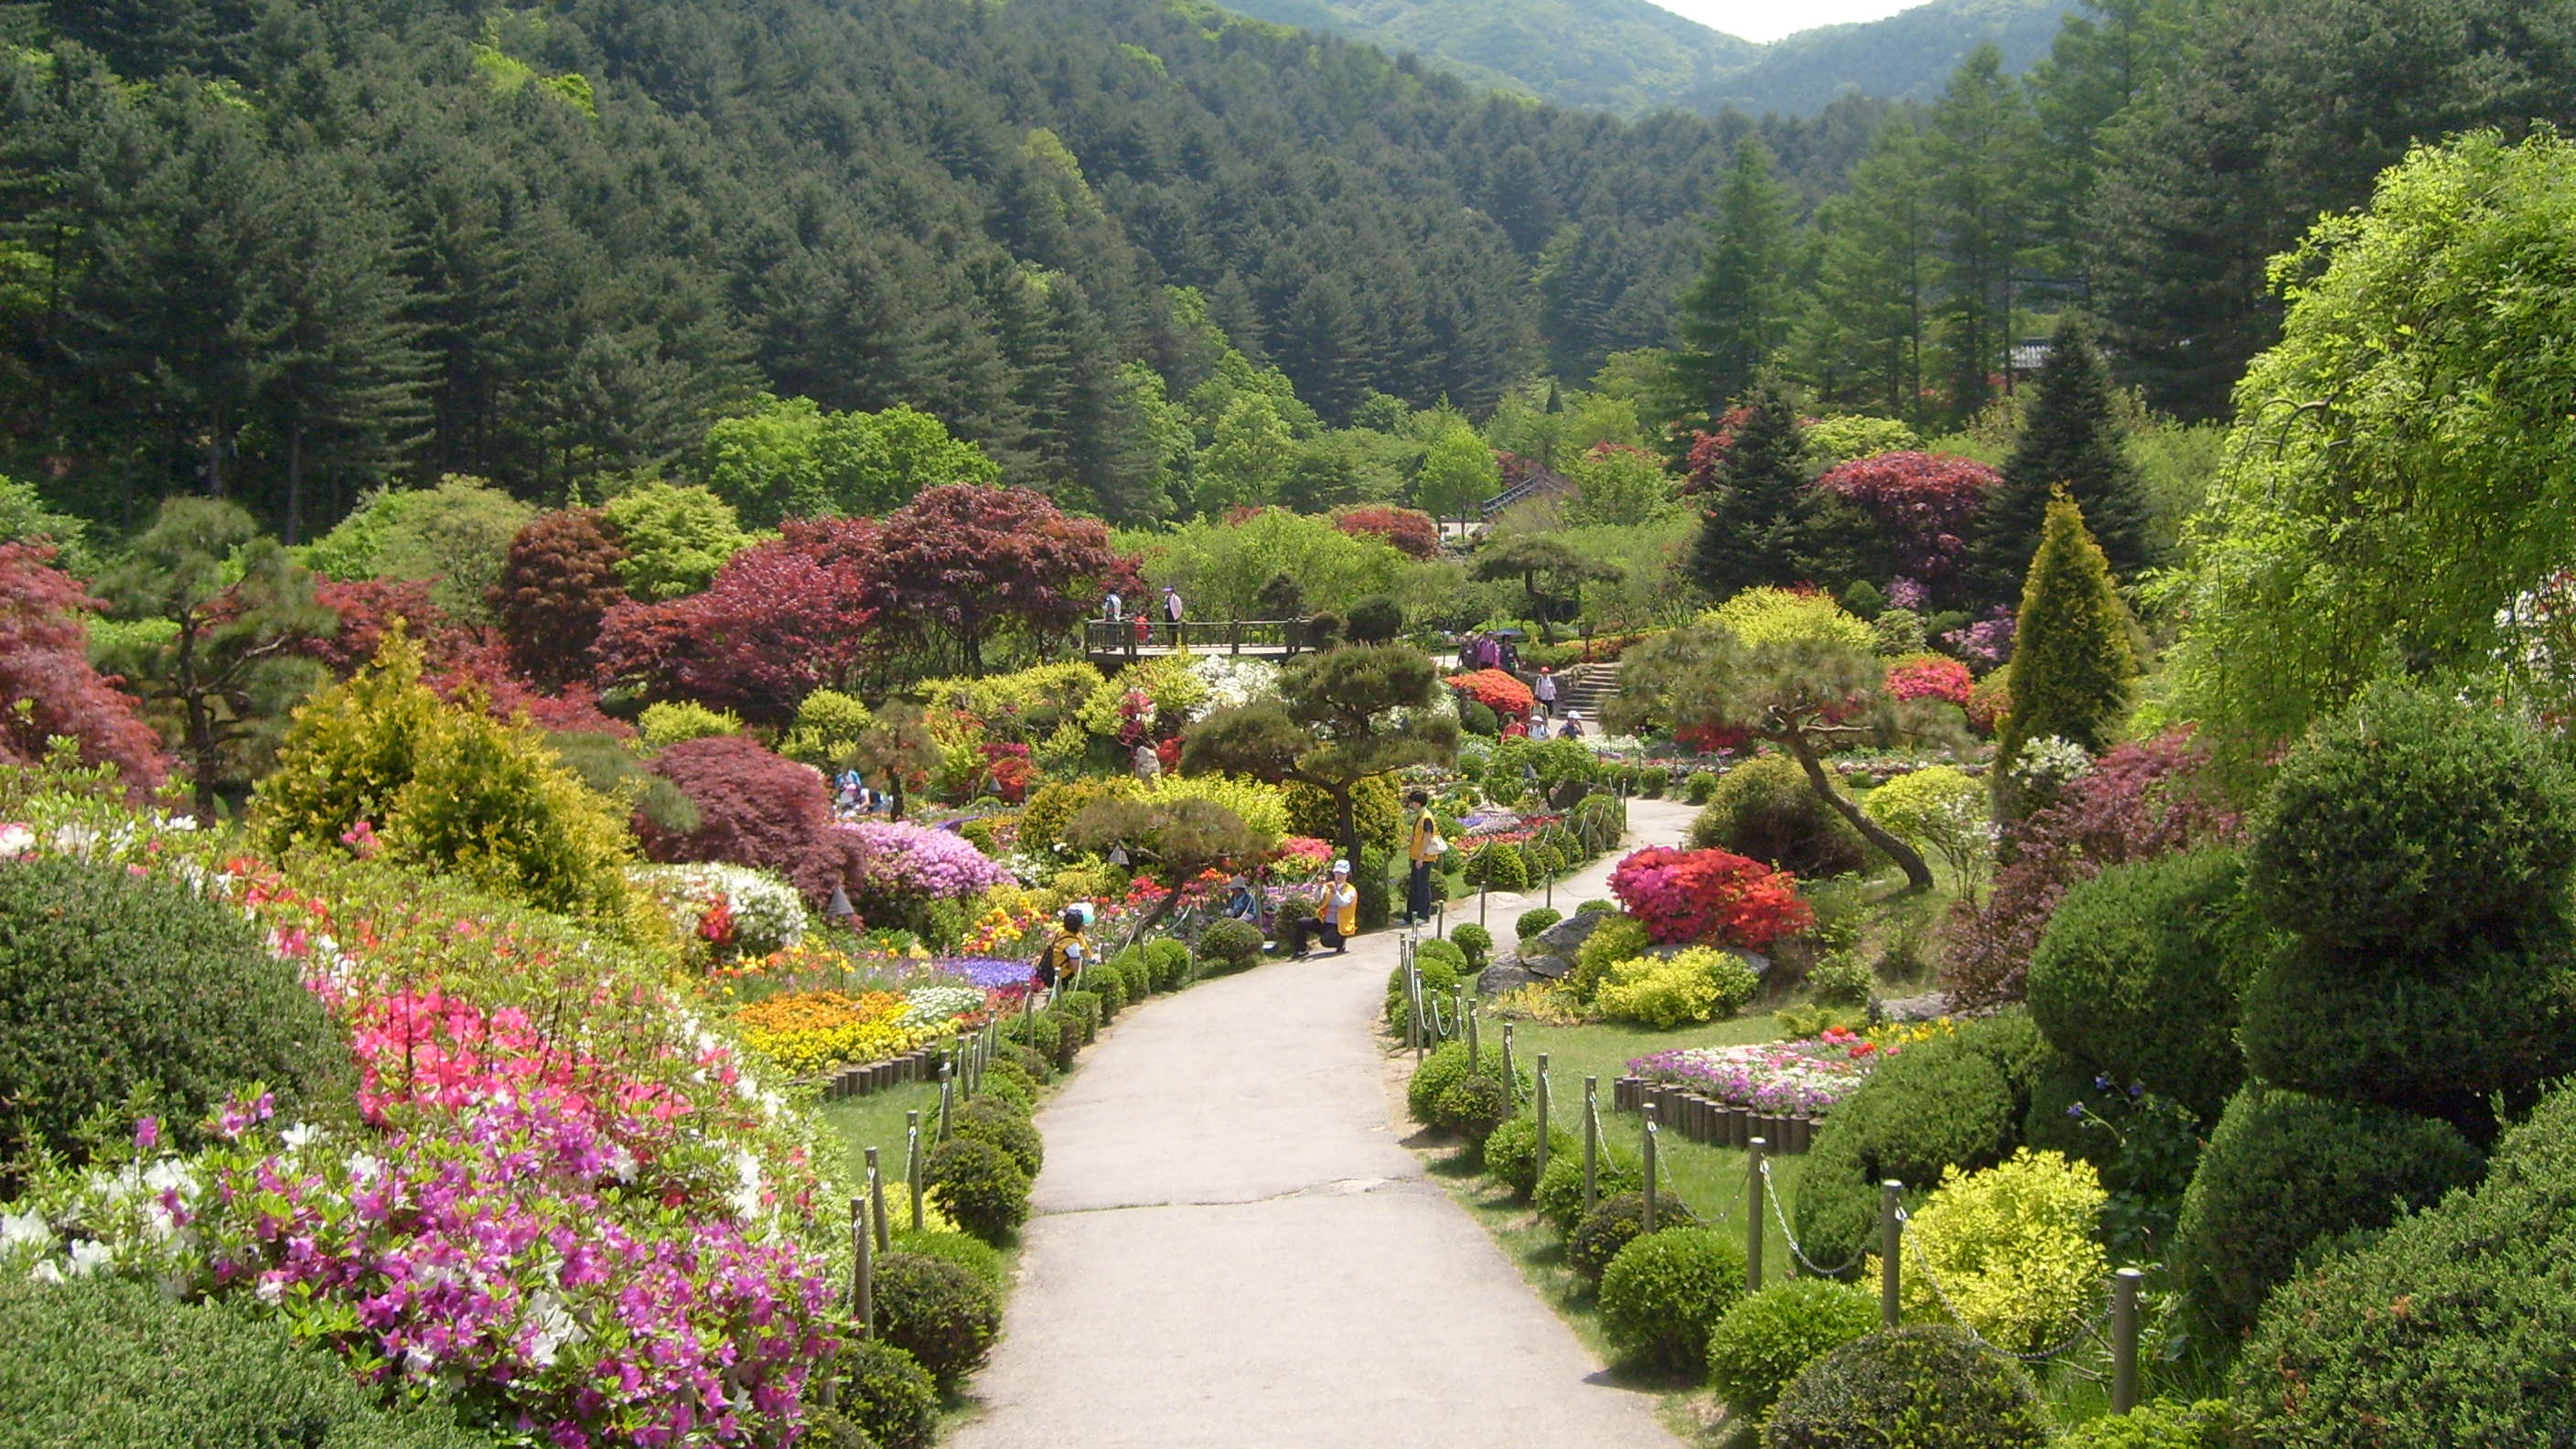 Let's visit the Garden of Morning Calm using public transportation (train and bus)